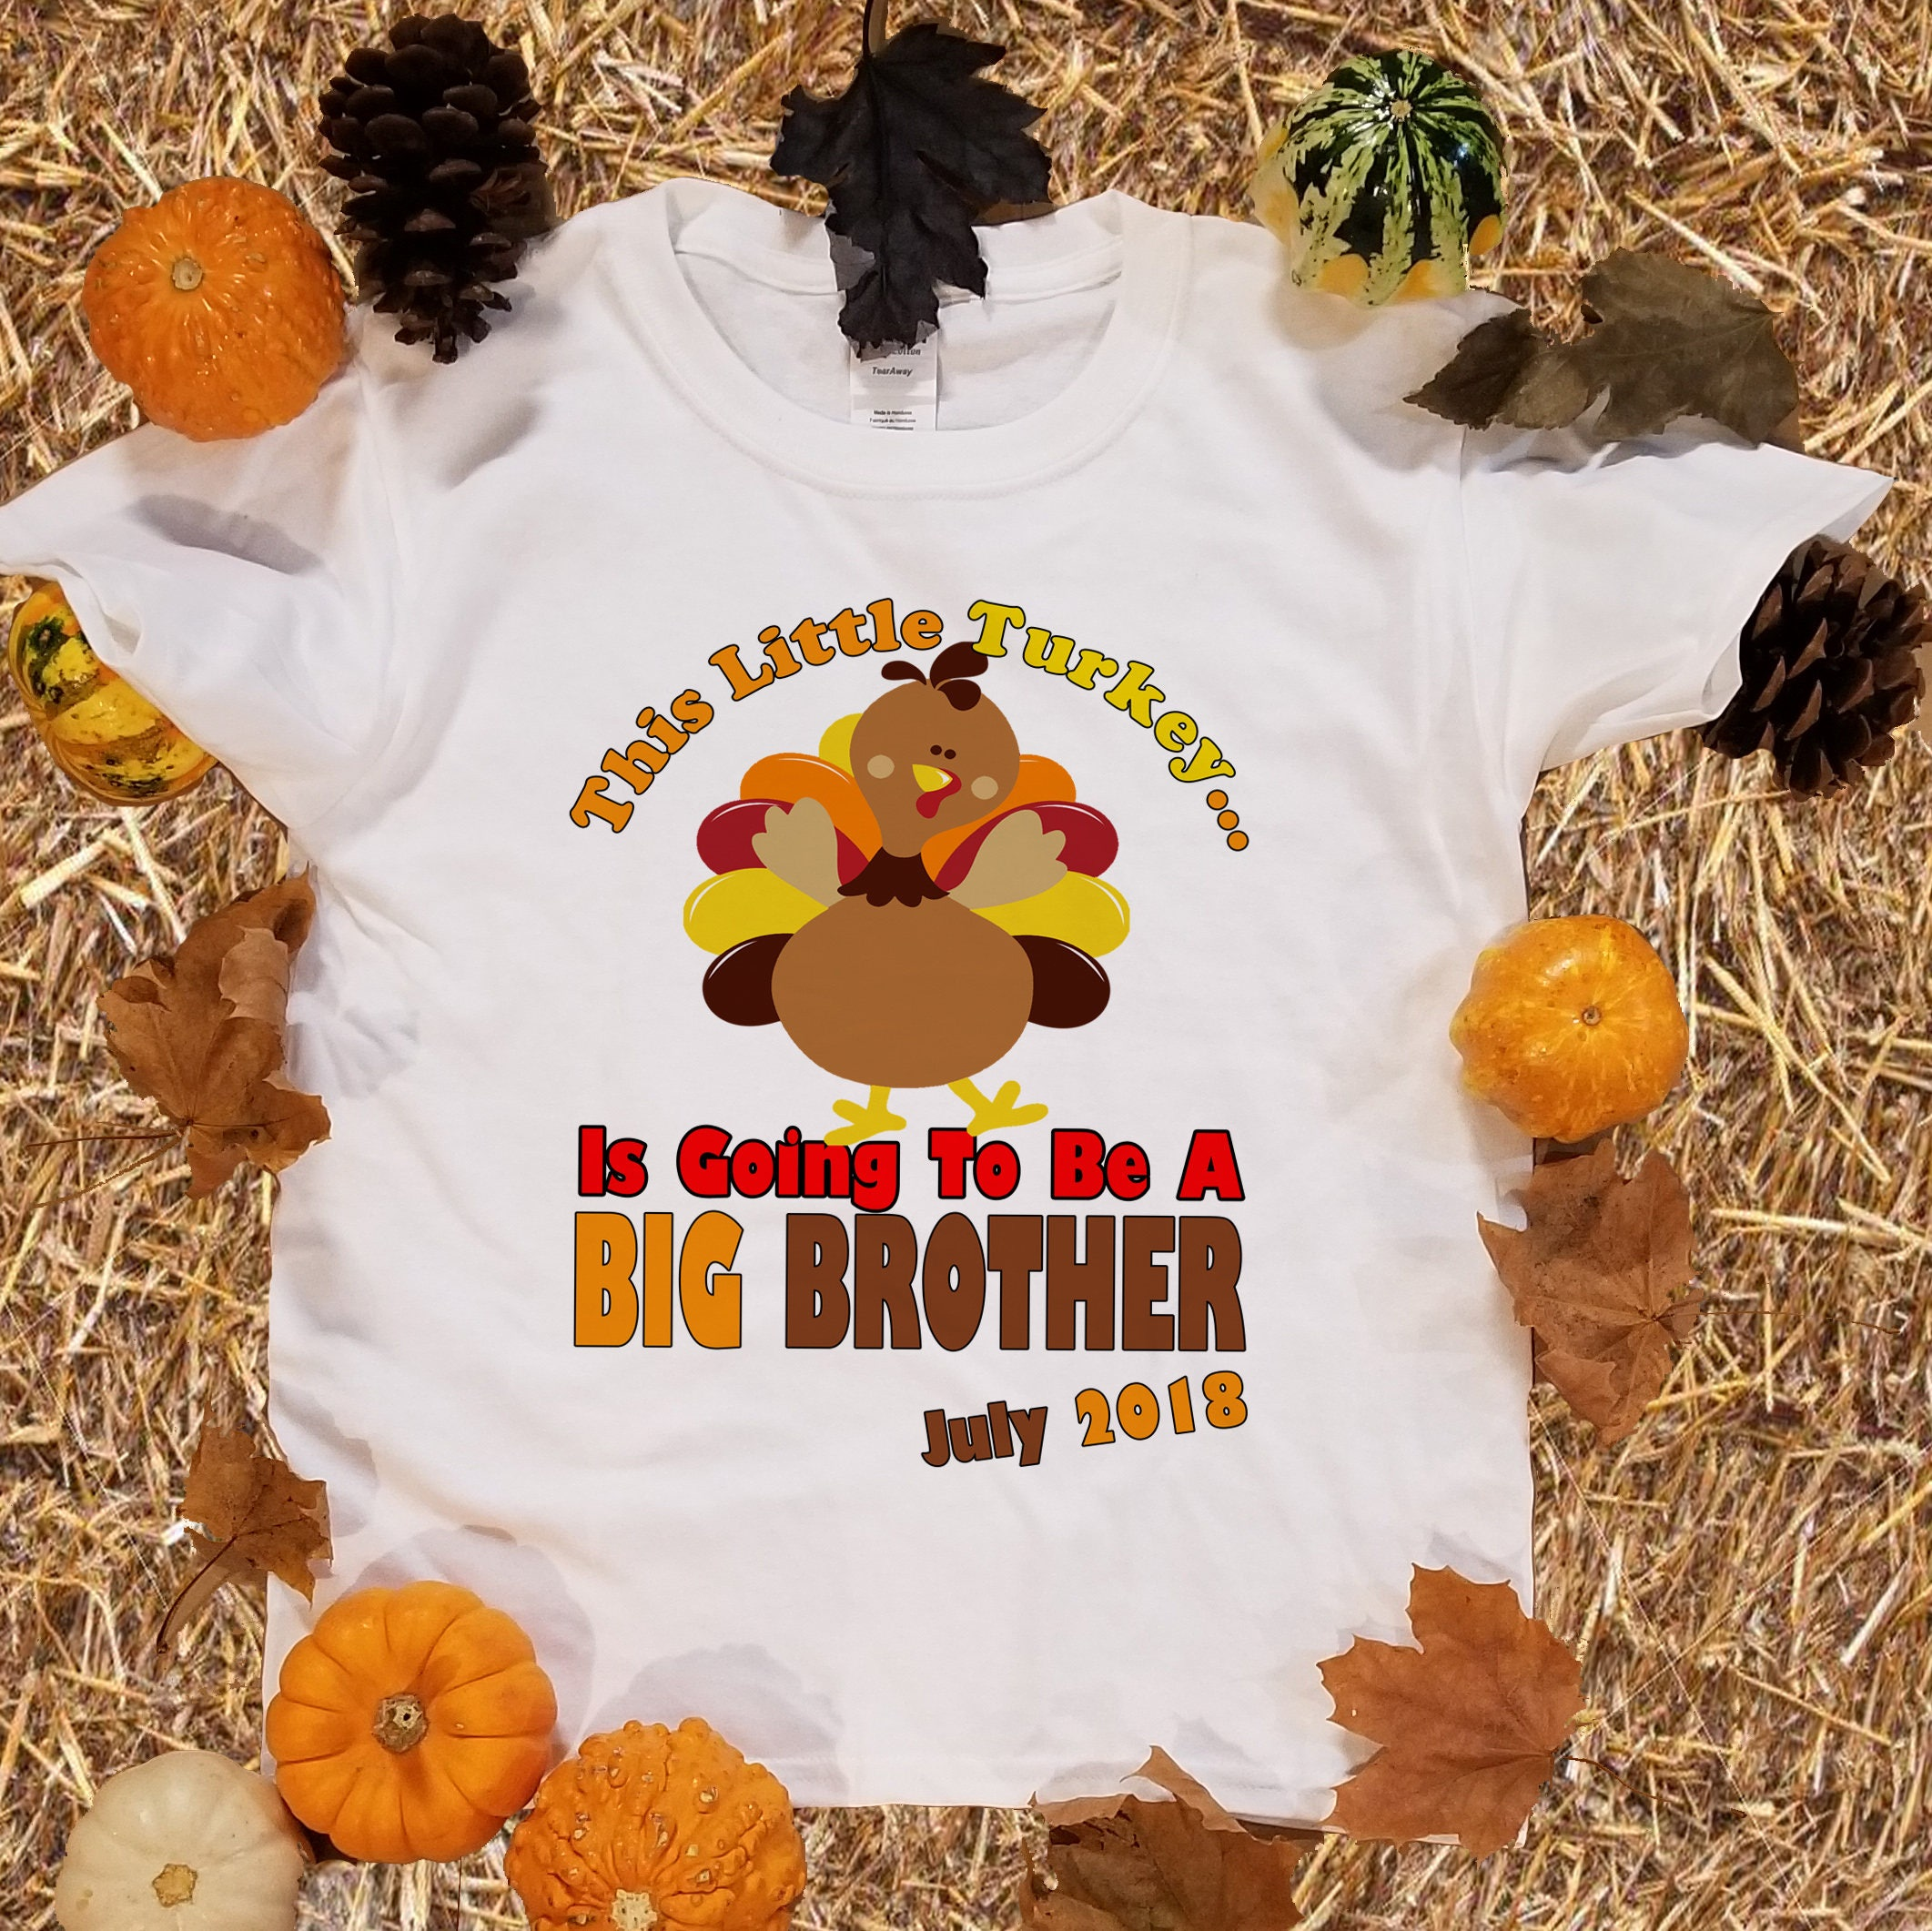 060f96504 ... Turkey Big Brother - Big Brother Announcement Shirt. gallery photo  gallery photo